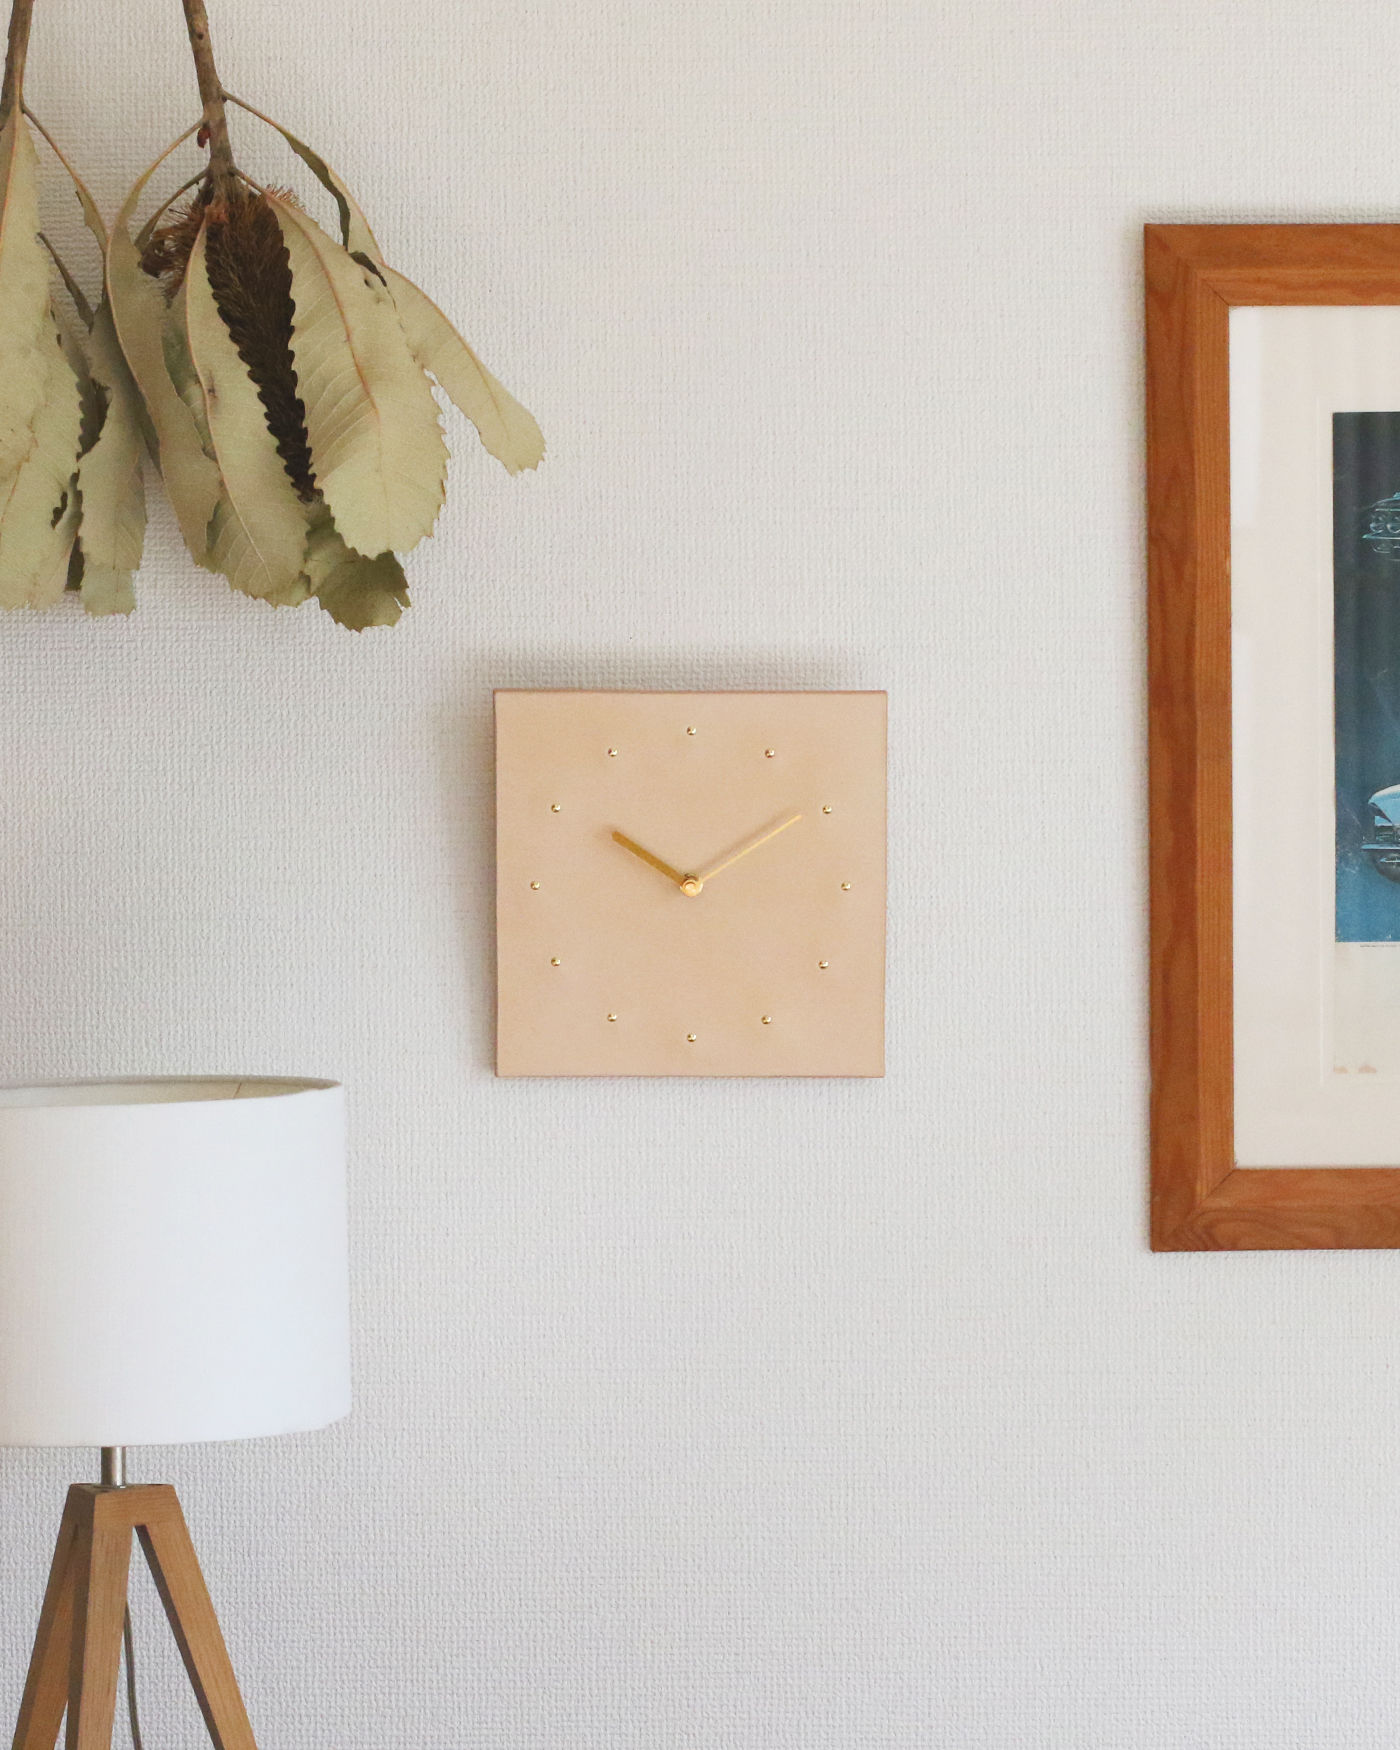 Wall clock ? / cheese